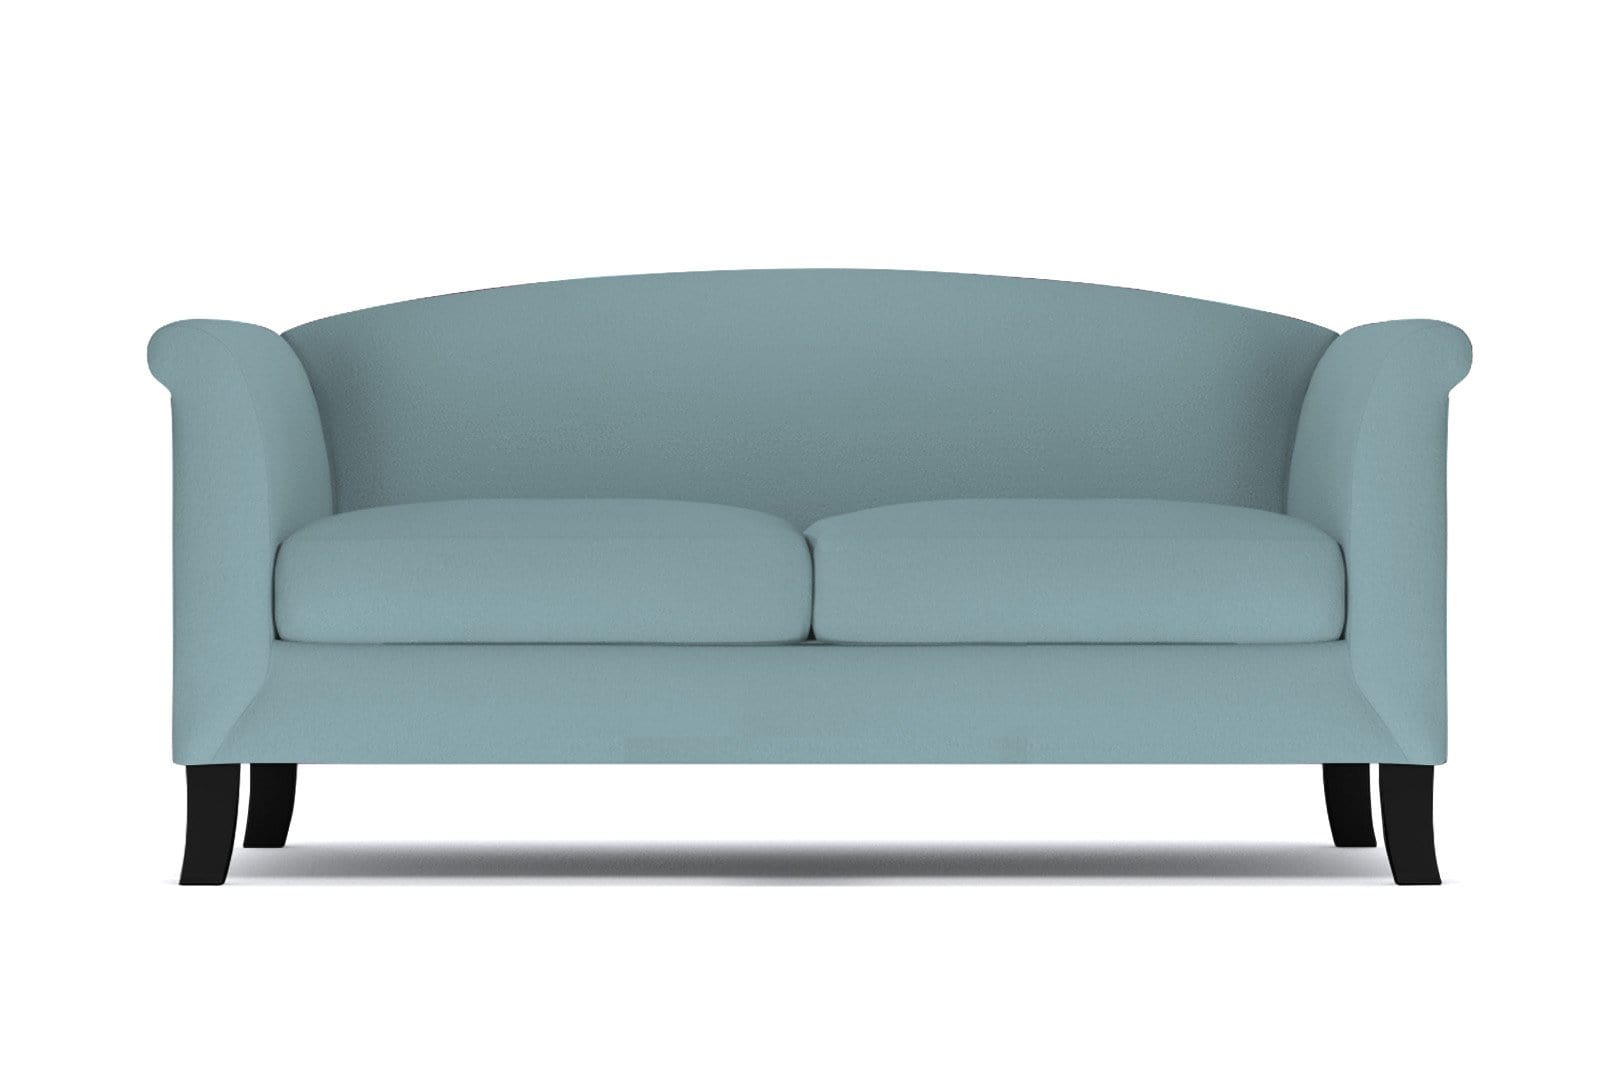 Albright_Apartment_Size_Sofa__Blue_Velvet___Small_Space_Modern_Couch_Made_in_the_USA__Sold_by_Apt2B